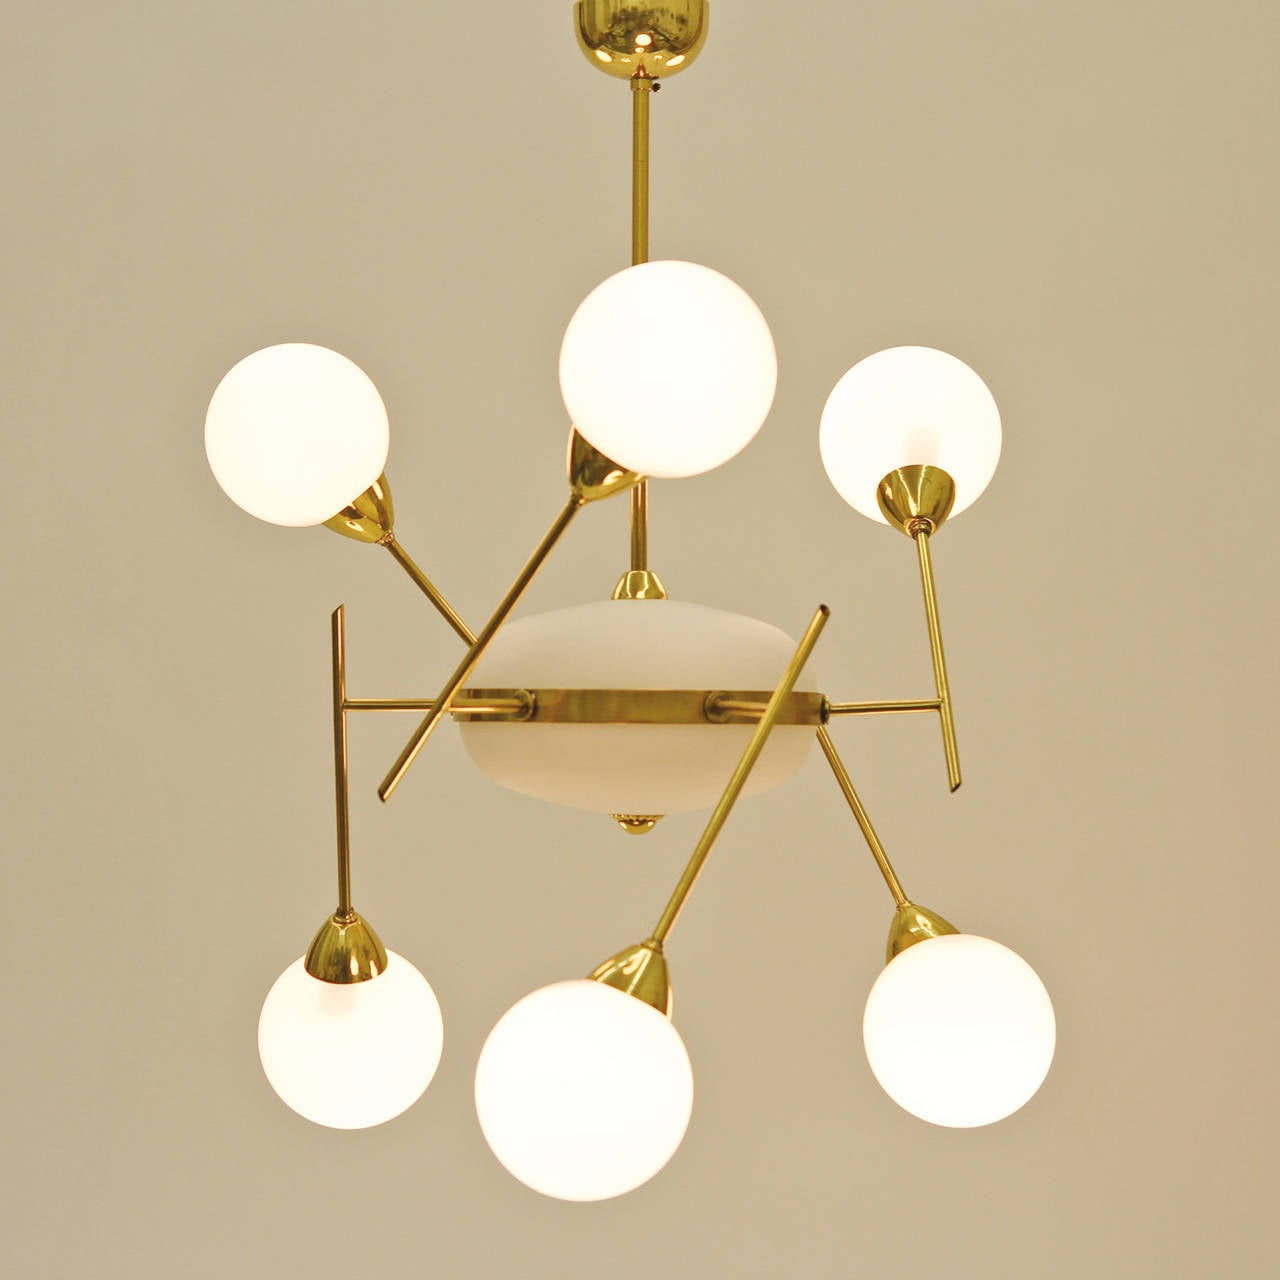 Unique Italian 1950s Brass and Glass Sputnik Chandelier at